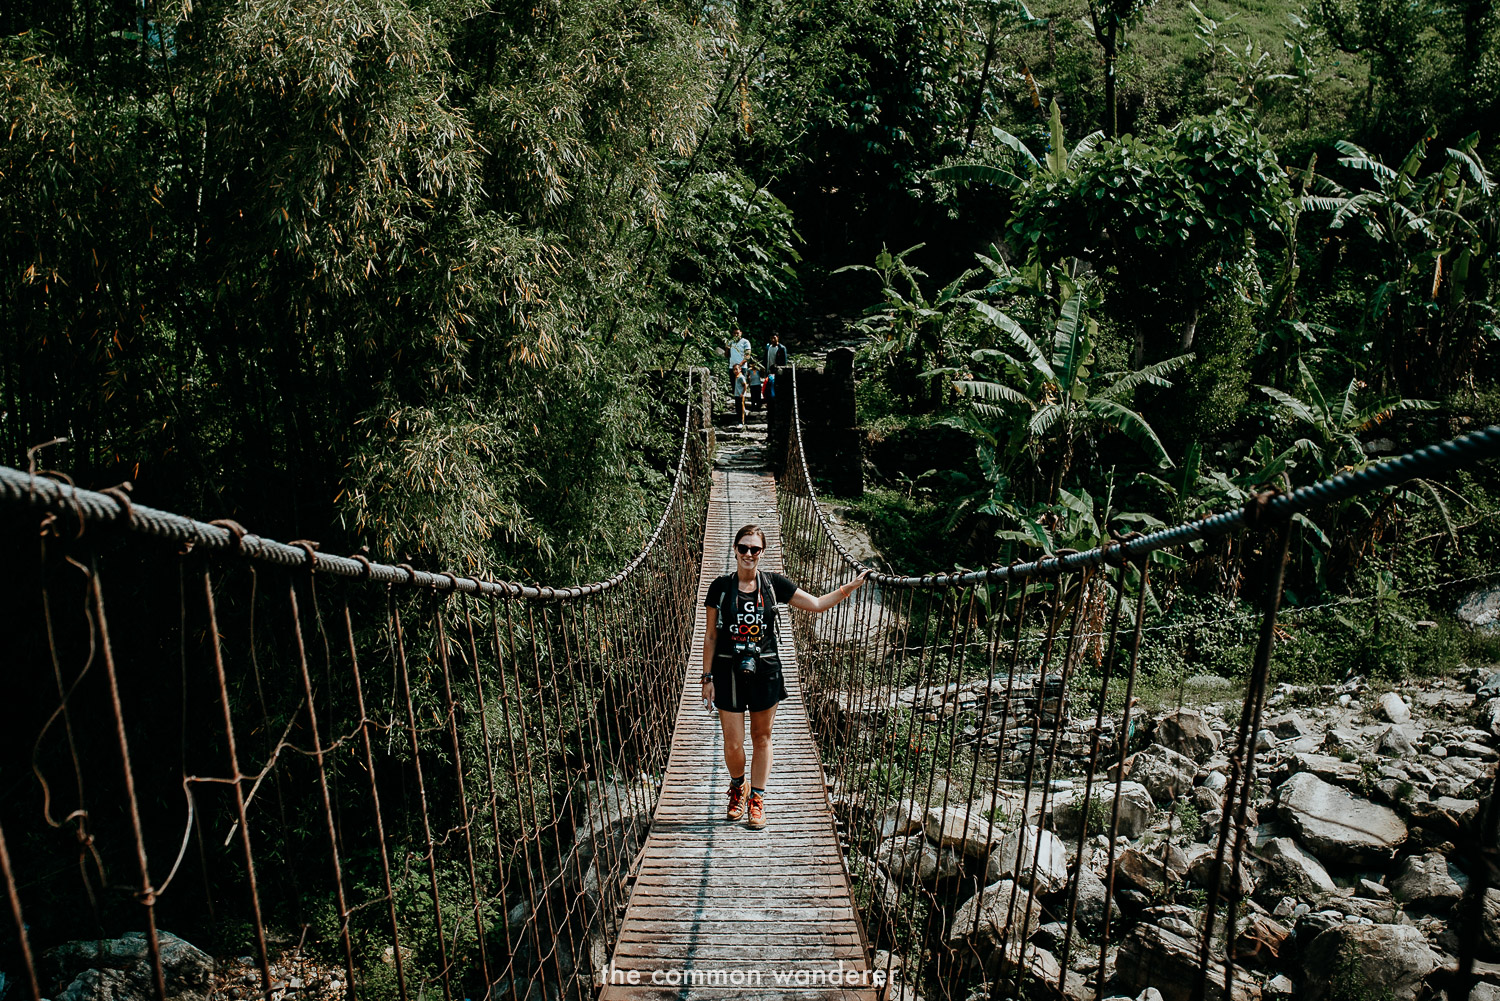 Walking across a suspension bridge to start the Poon Hill trek, Nepal